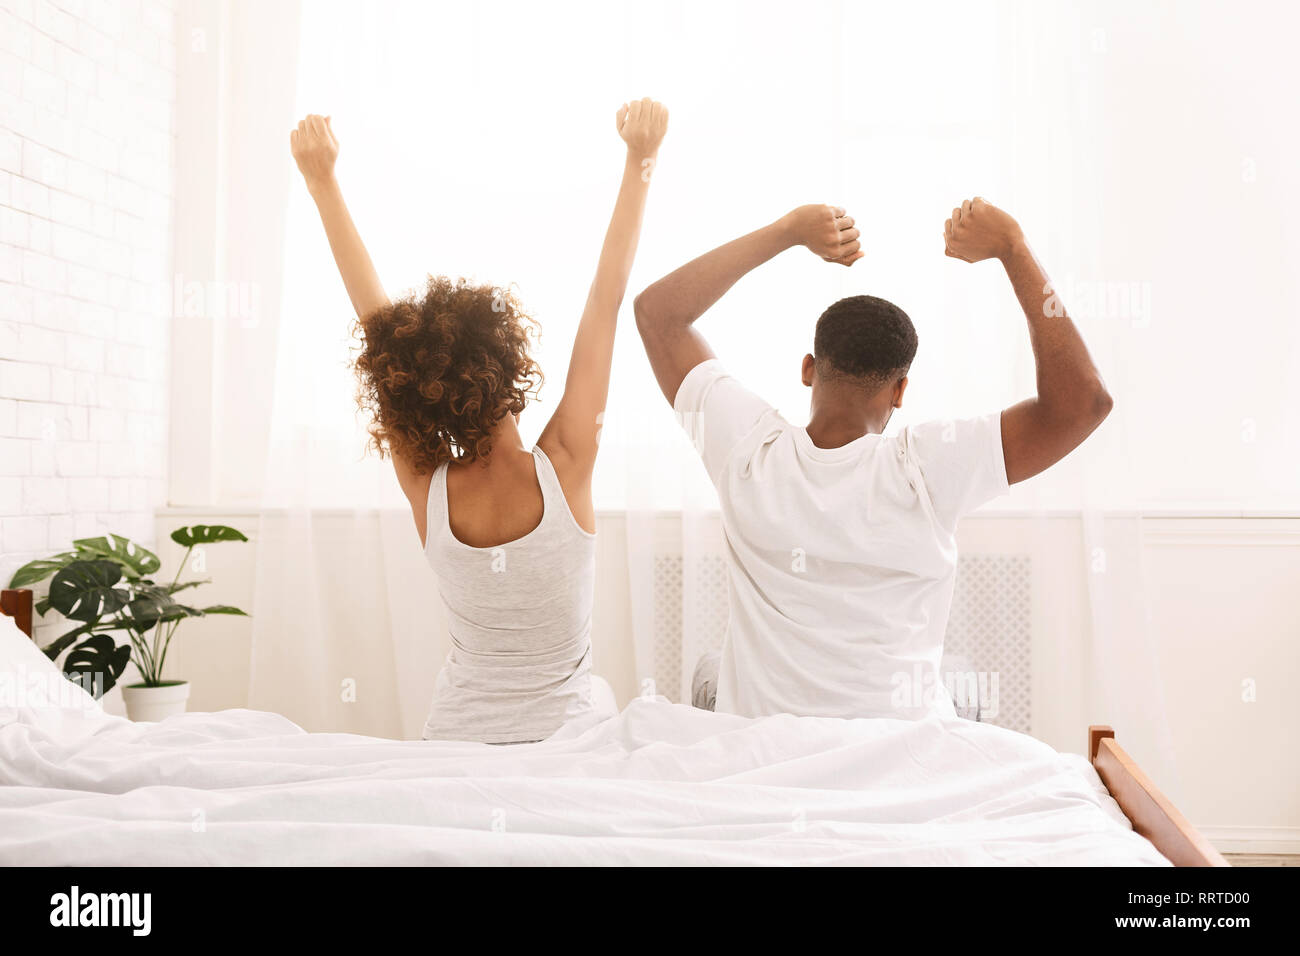 Funny married couple stretching in bedroom after wakeup - Stock Image